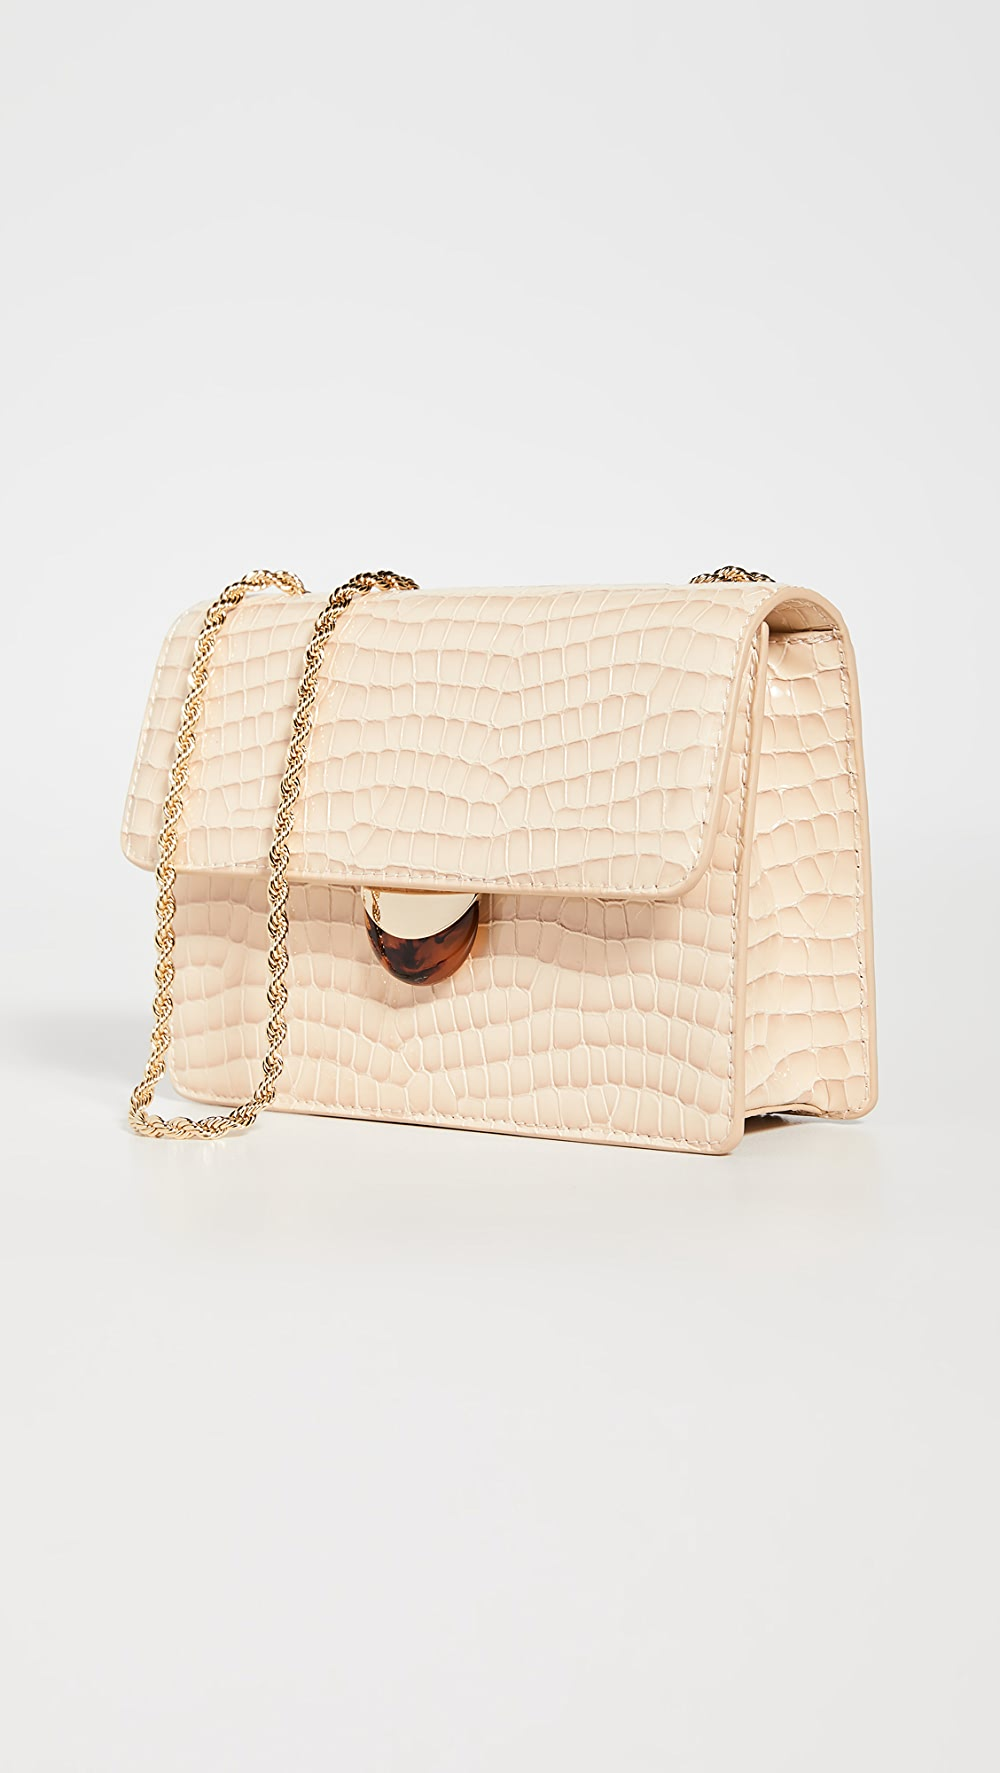 Generous Loeffler Randall - Anima Small Chain Crossbody Bag Crazy Price